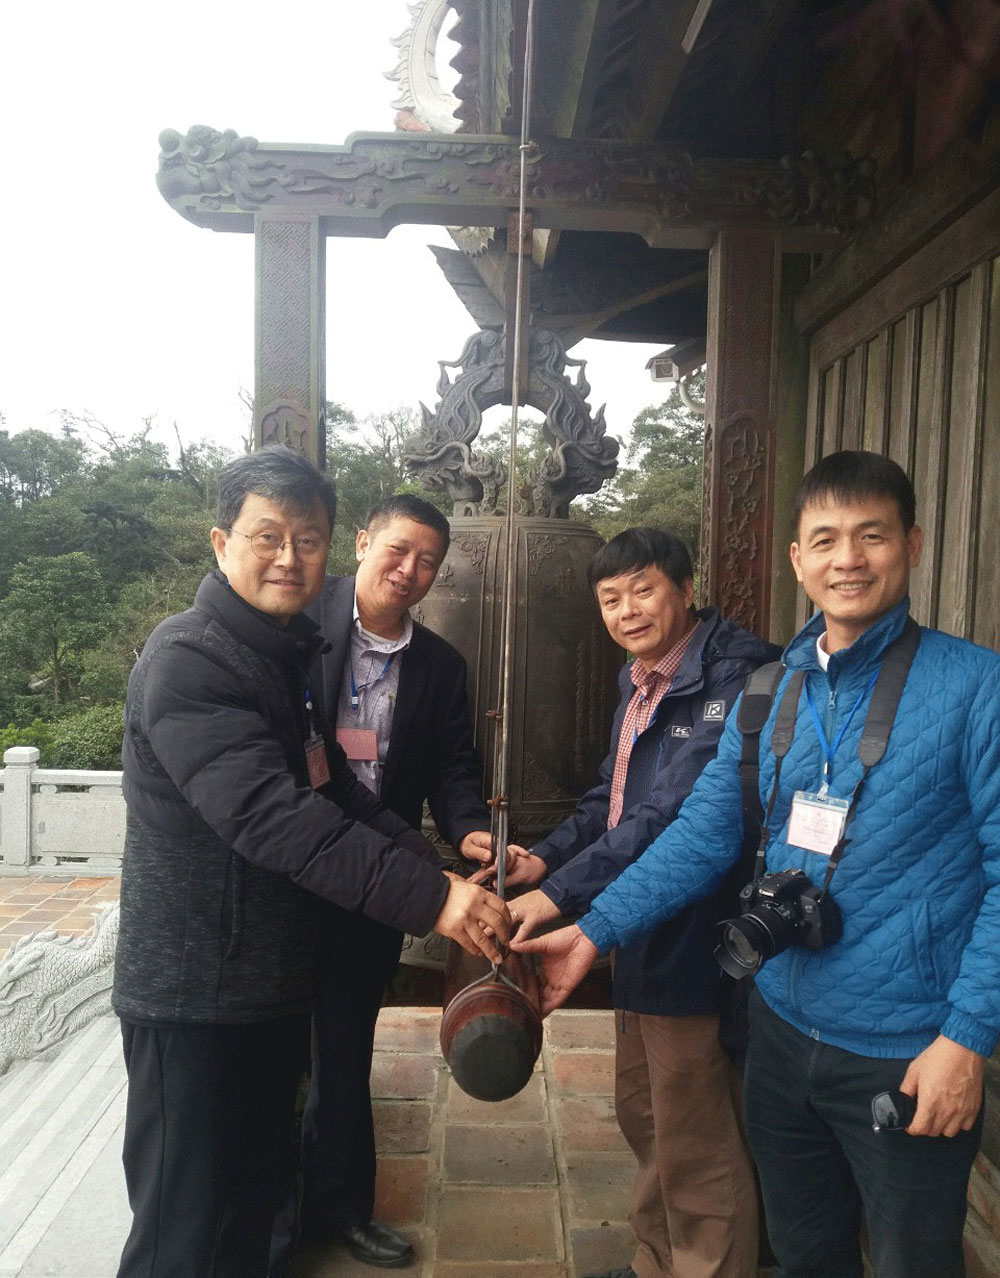 Thousands of visitors, Tay Yen Tu, Spiritual – Ecotourism Complex, Rose Garden, first day of New Year, Bac Giang province